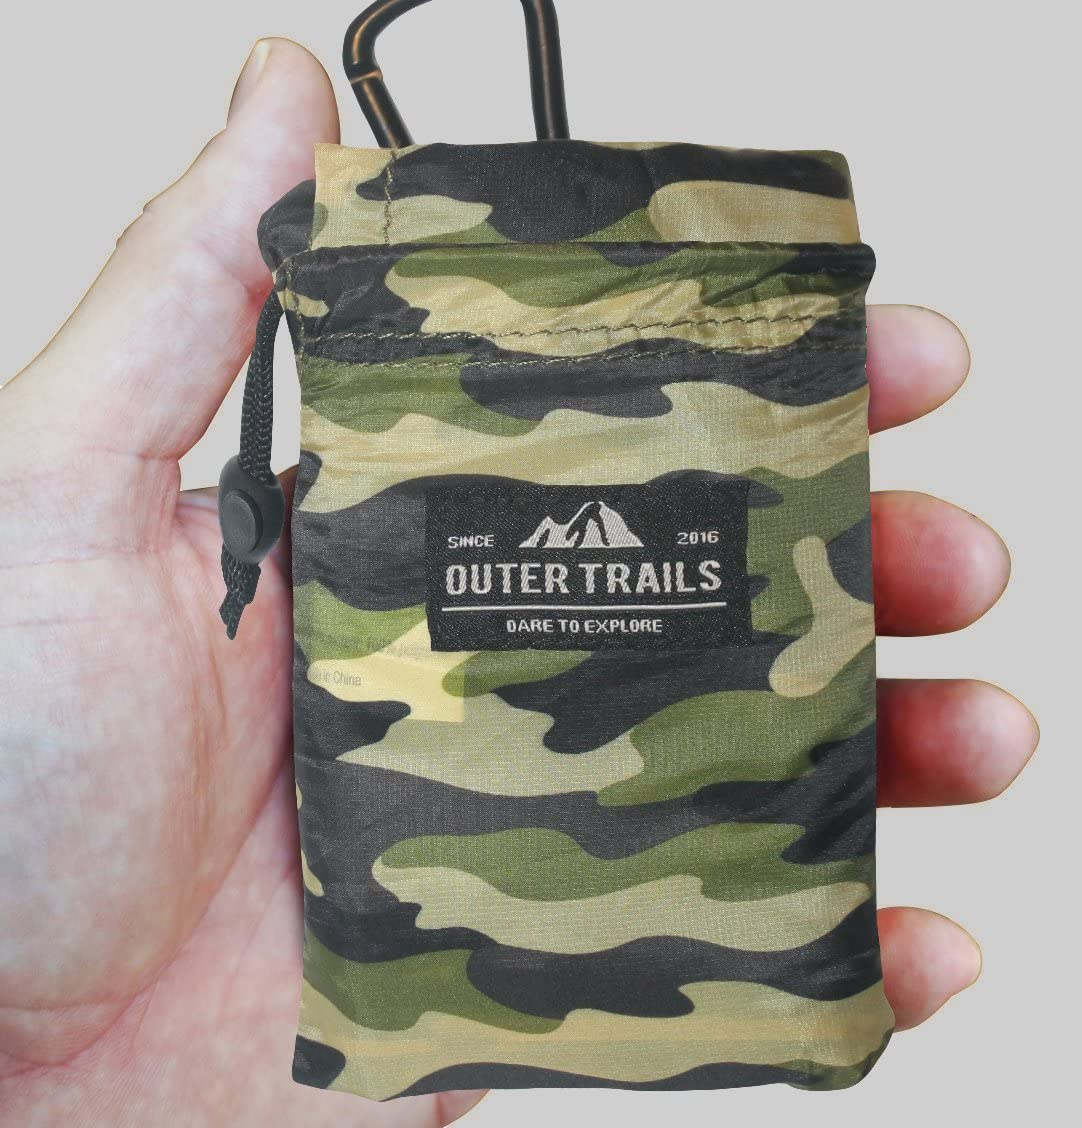 Outer Trails Pocket Picnic Blanket Mat - Water Resistant, Puncture Resistant, Compact, Ultra Lightweight, Compact & Soft - Picnics, Beach, Camping, Concerts, Festivals, Travel, Sports